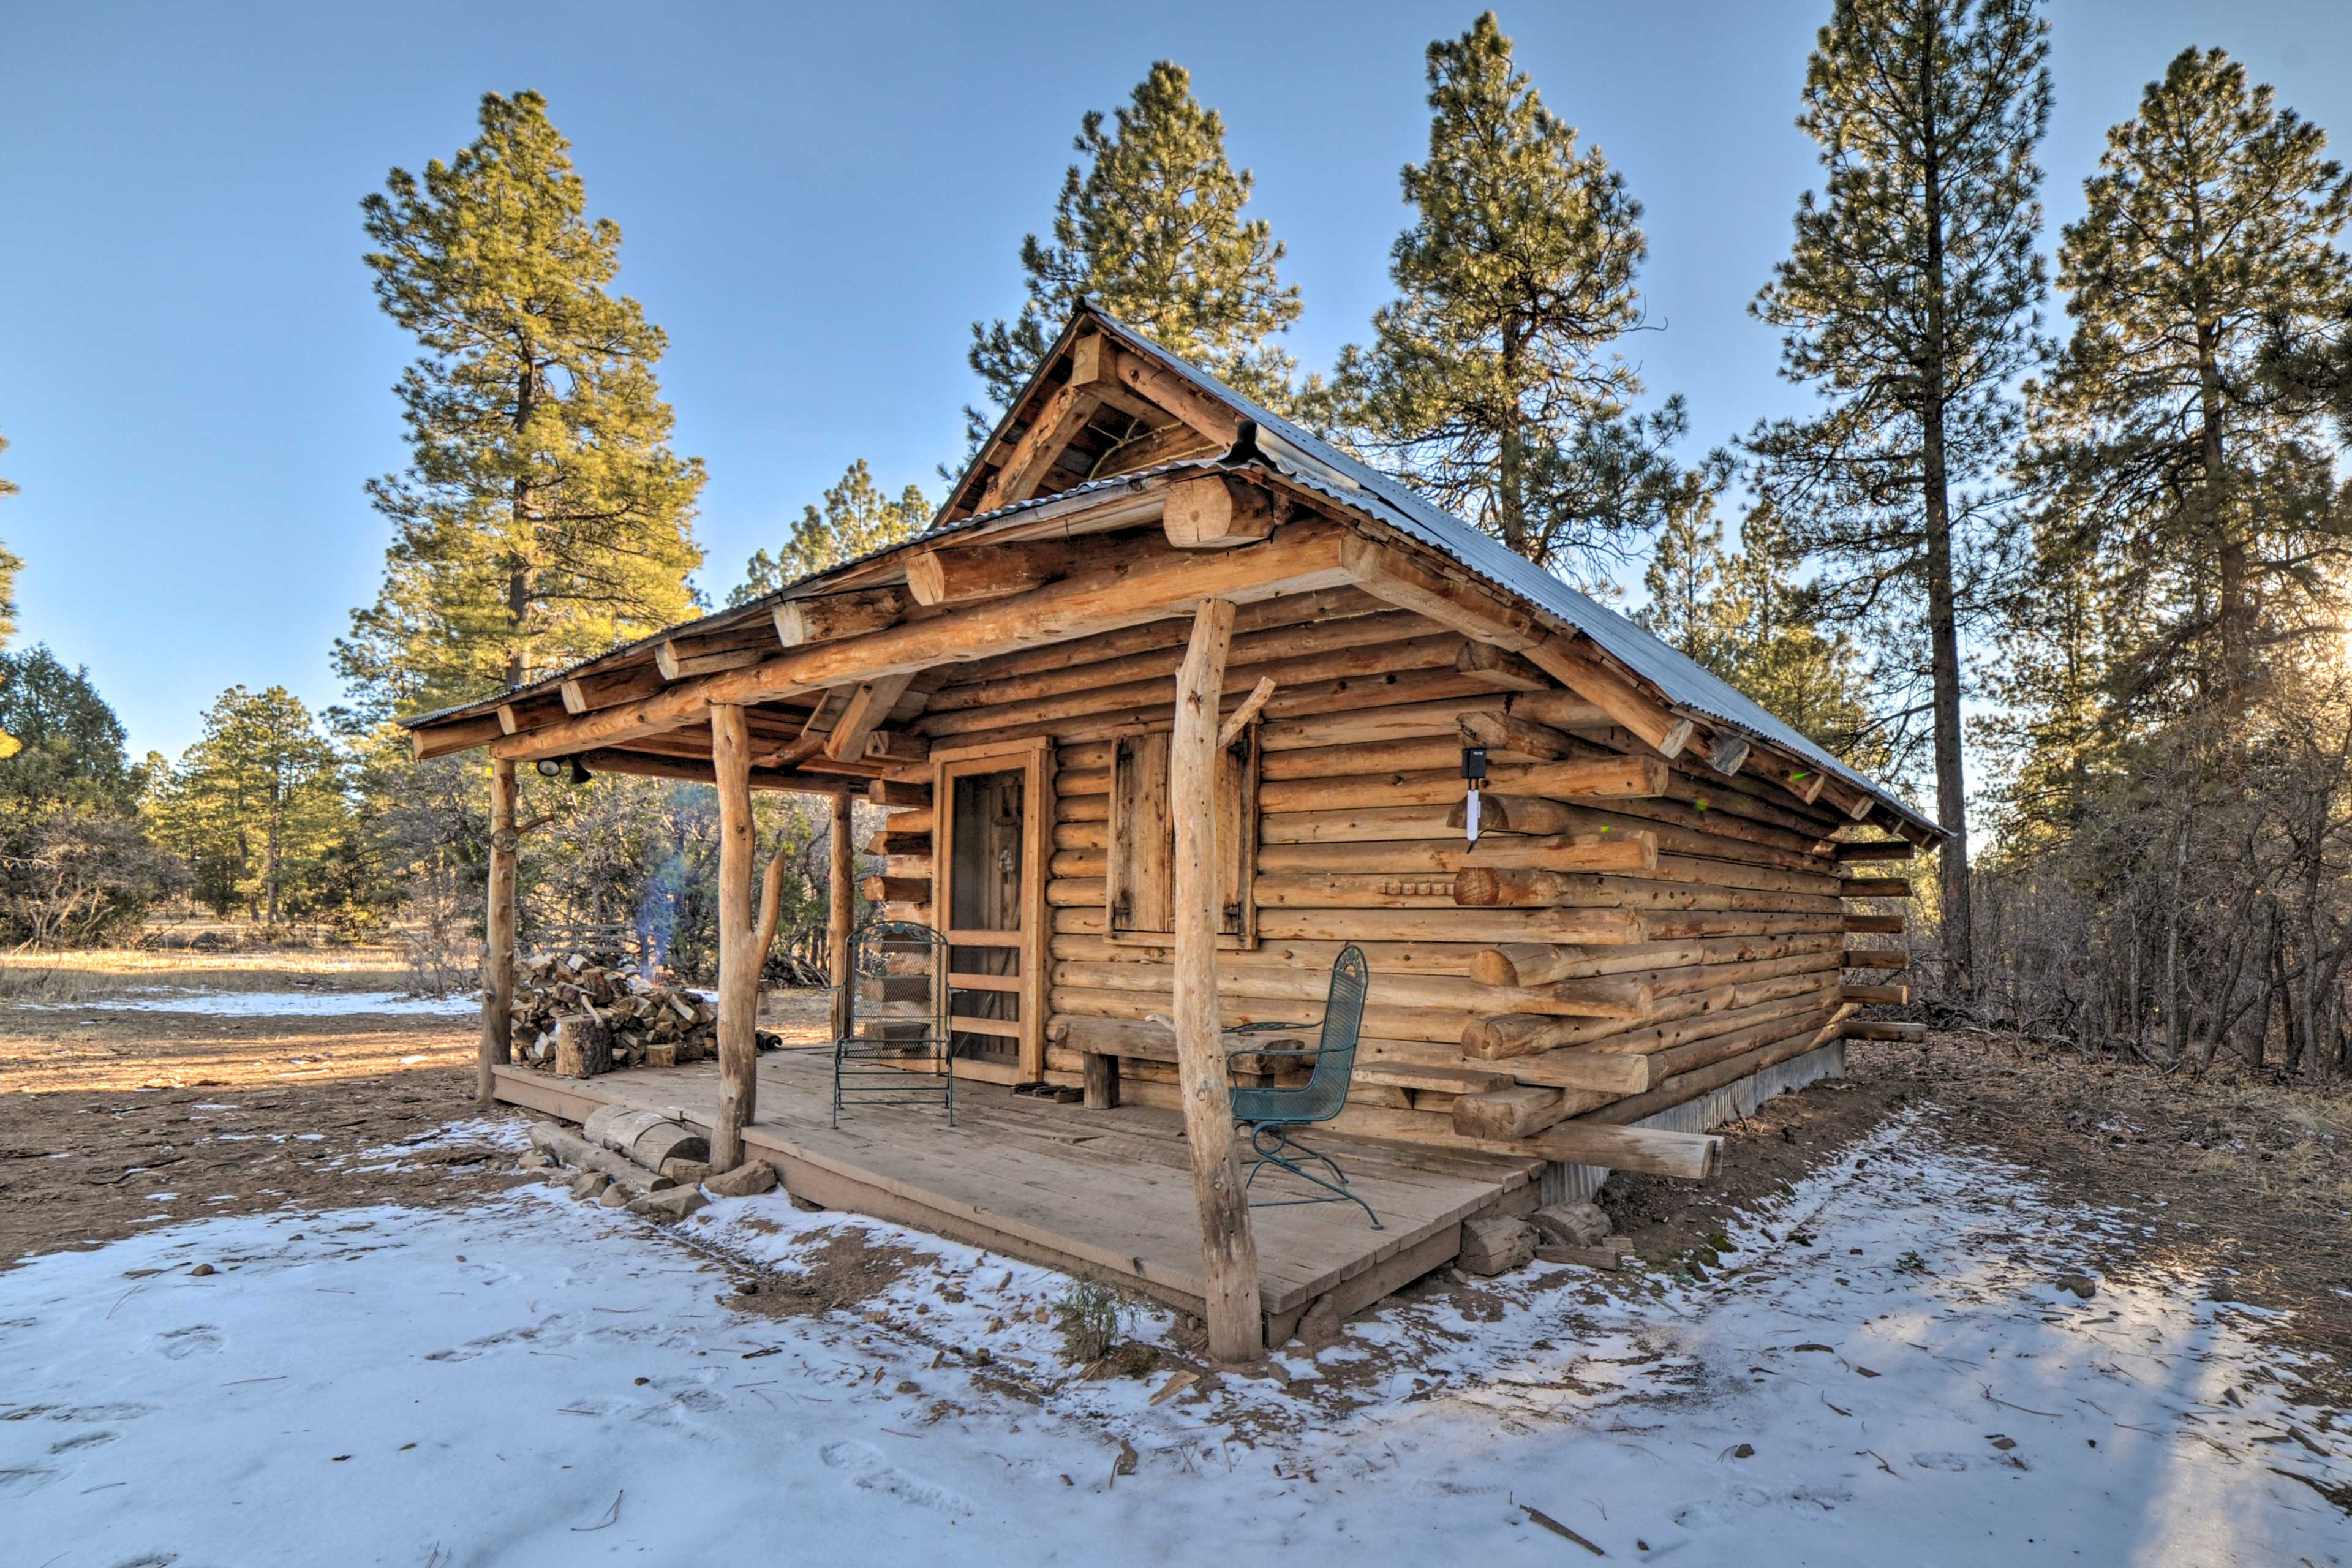 This quaint cabin accommodates up to 5 guests.